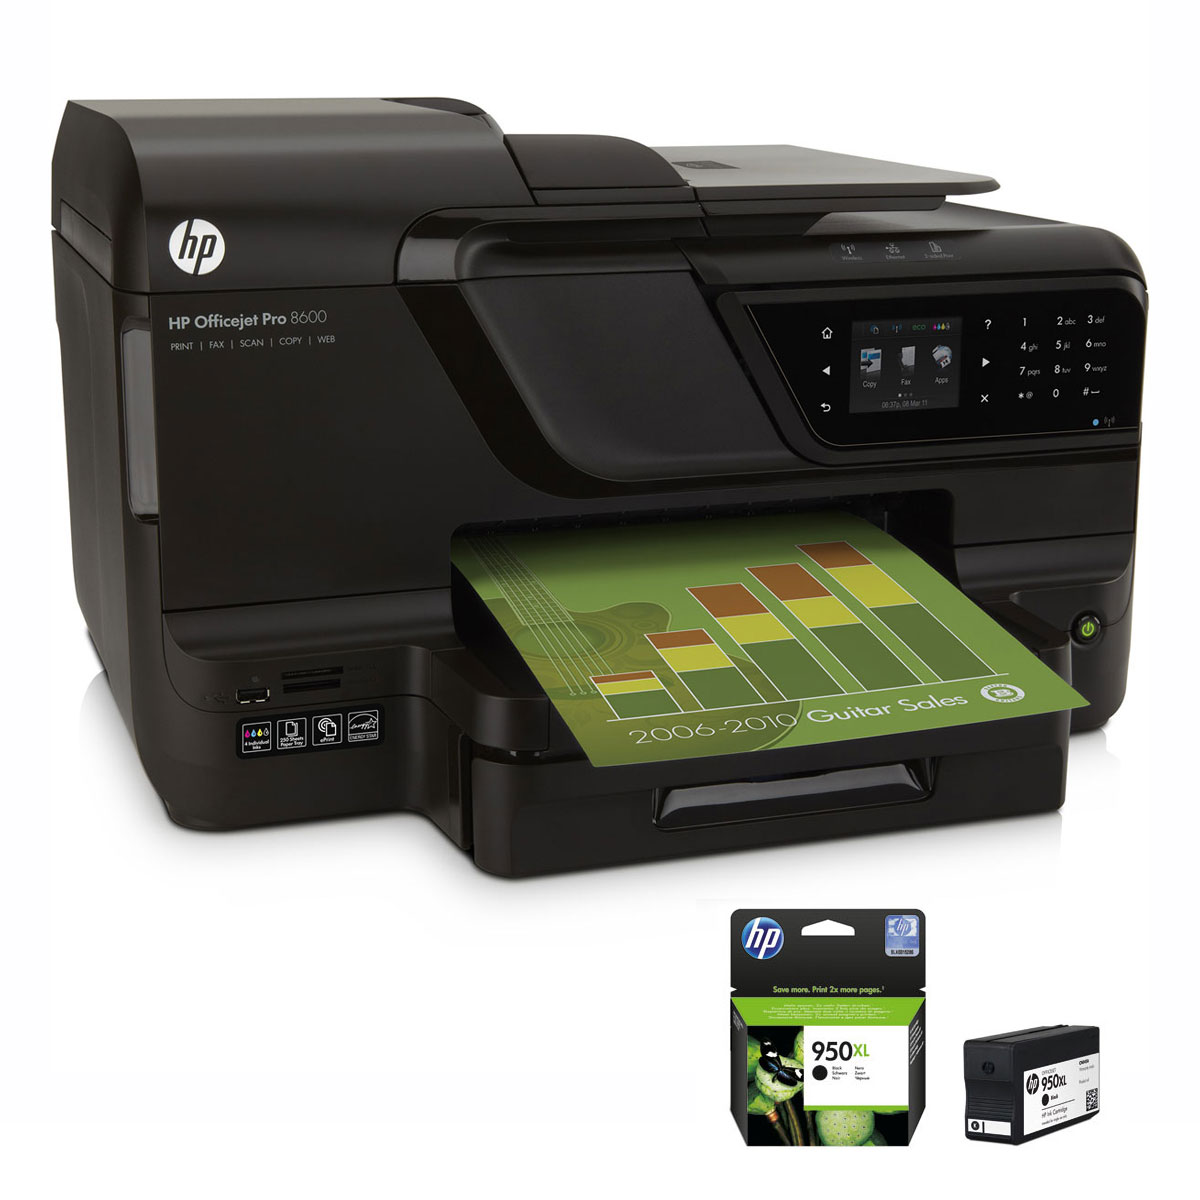 hp officejet pro 8600 cartouche hp 950 xl noire. Black Bedroom Furniture Sets. Home Design Ideas